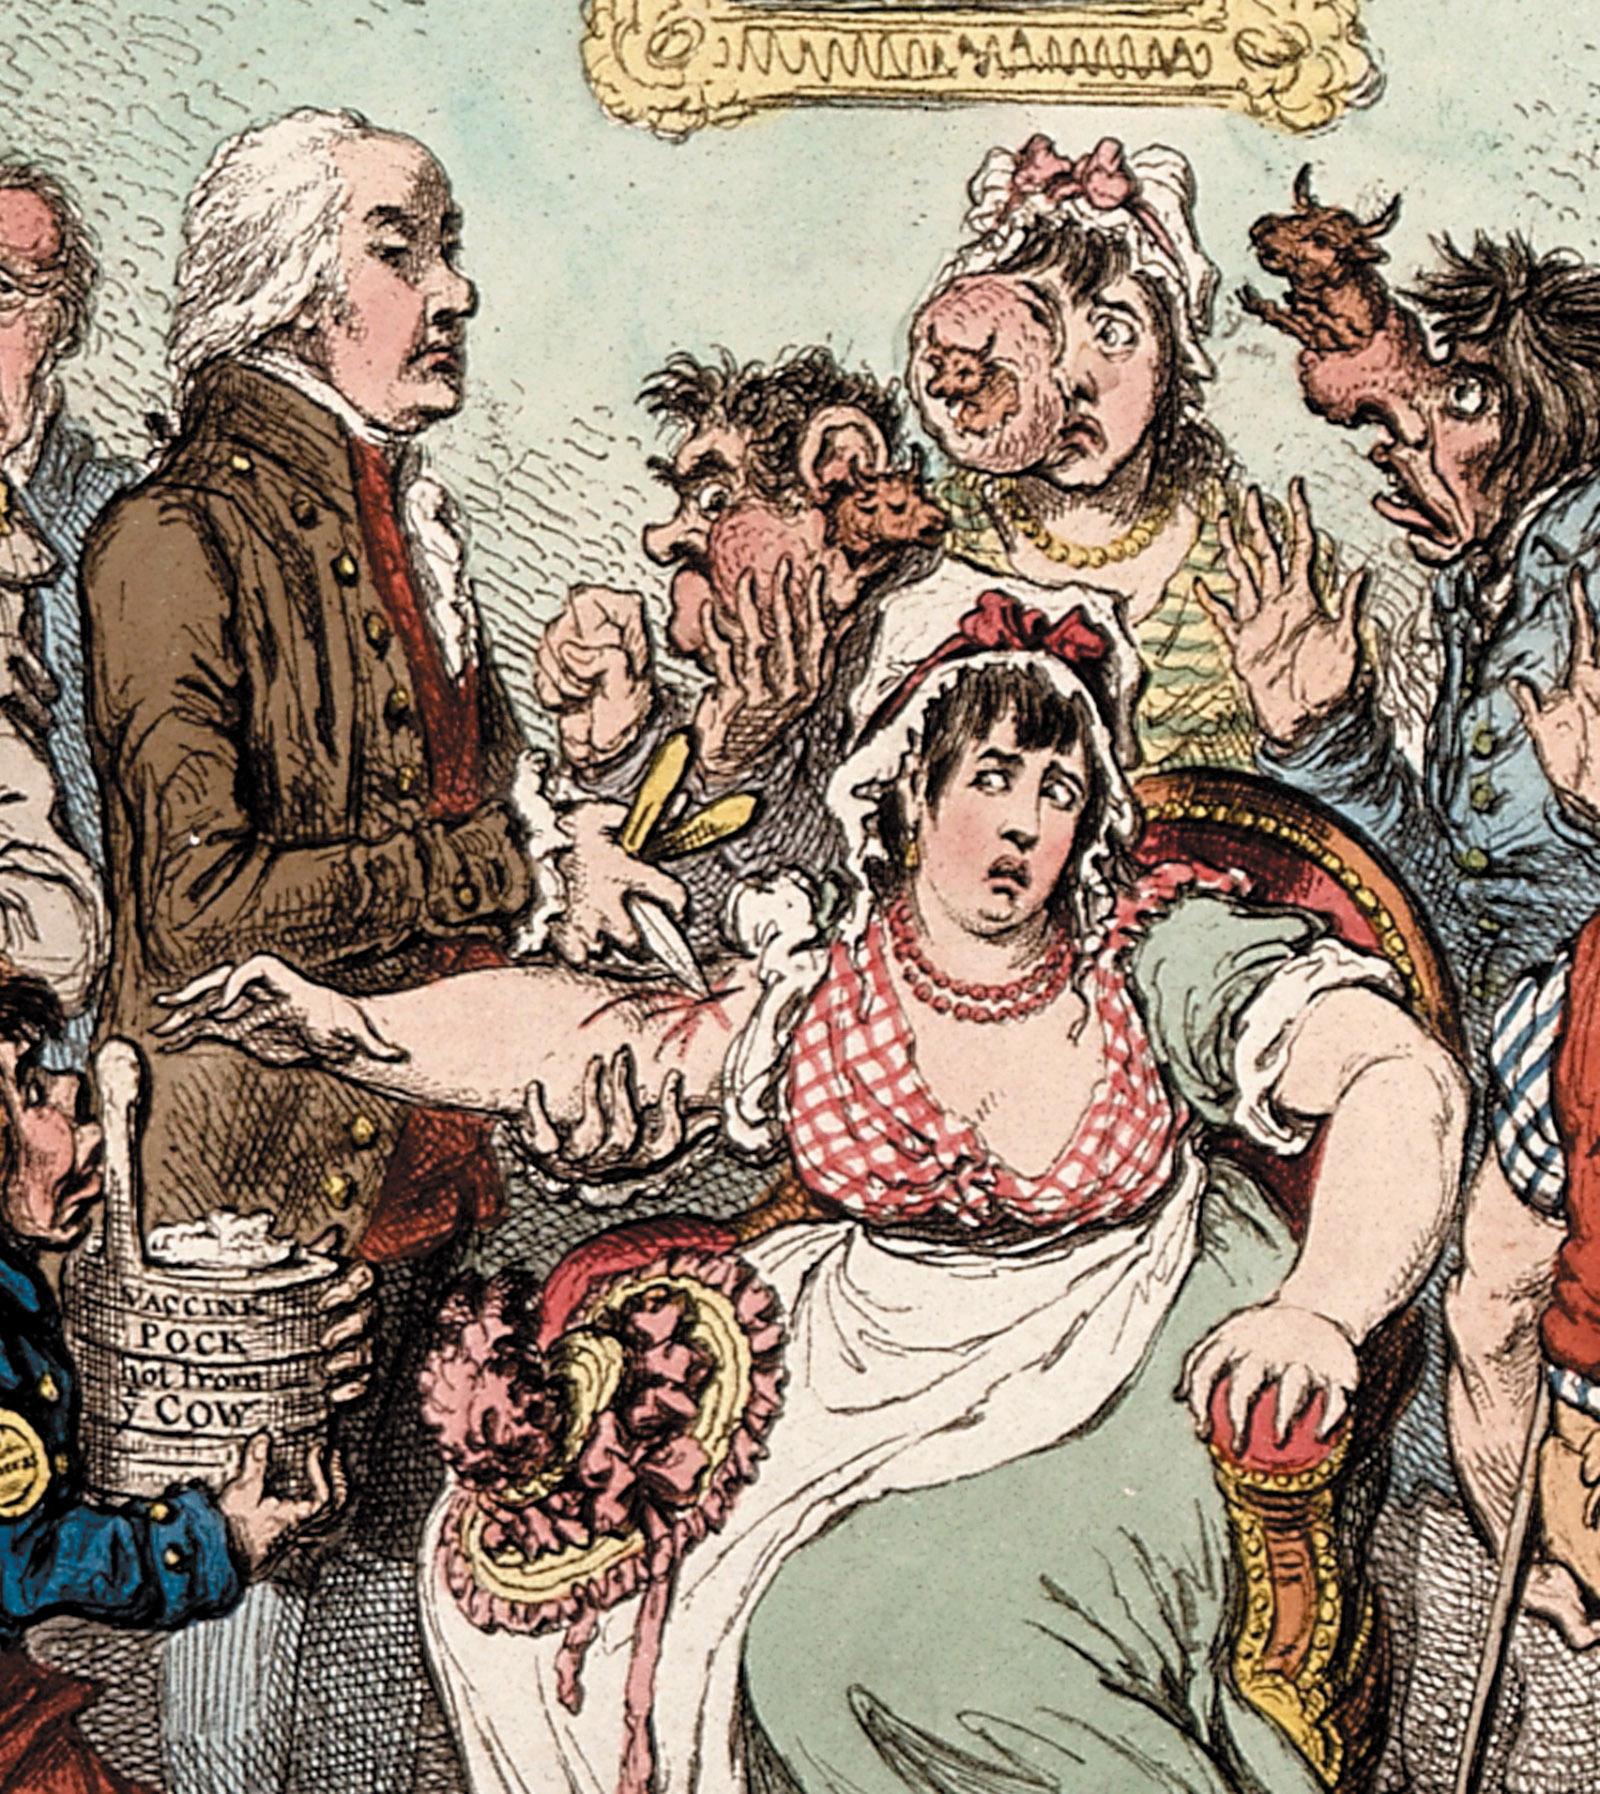 James Gillray's cartoon of Dr. Edward Jenner vaccinating patients, 1802